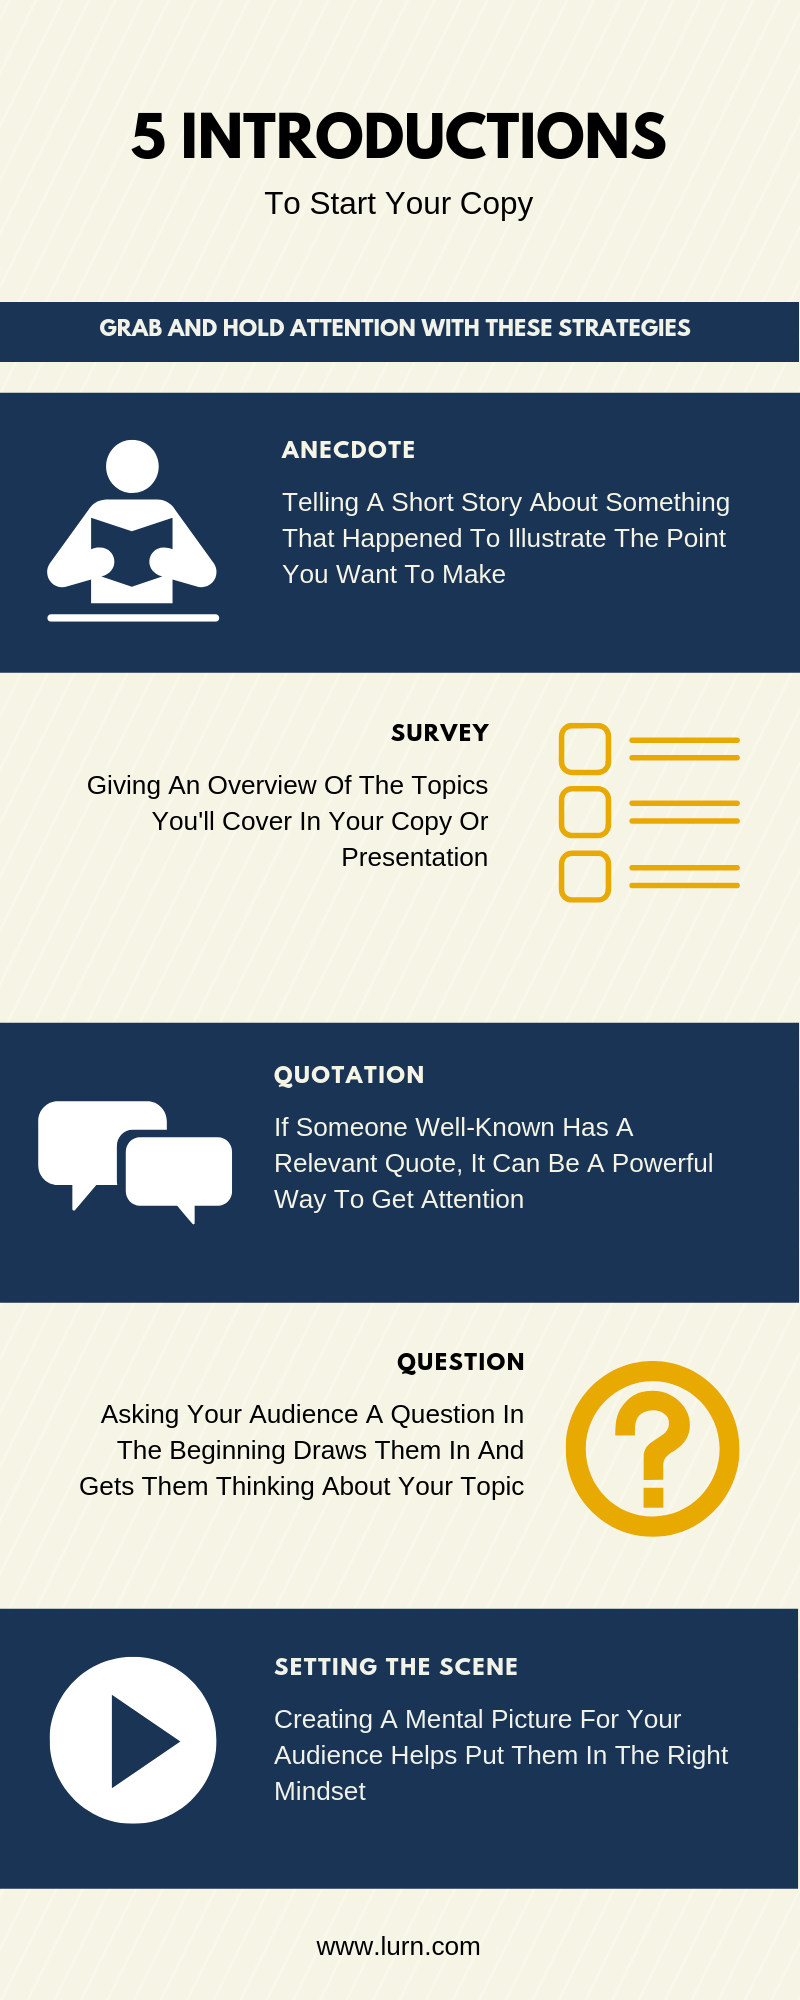 Infographic showing 5 types of introductions: anecdote, survey, quotation, question, setting the scene